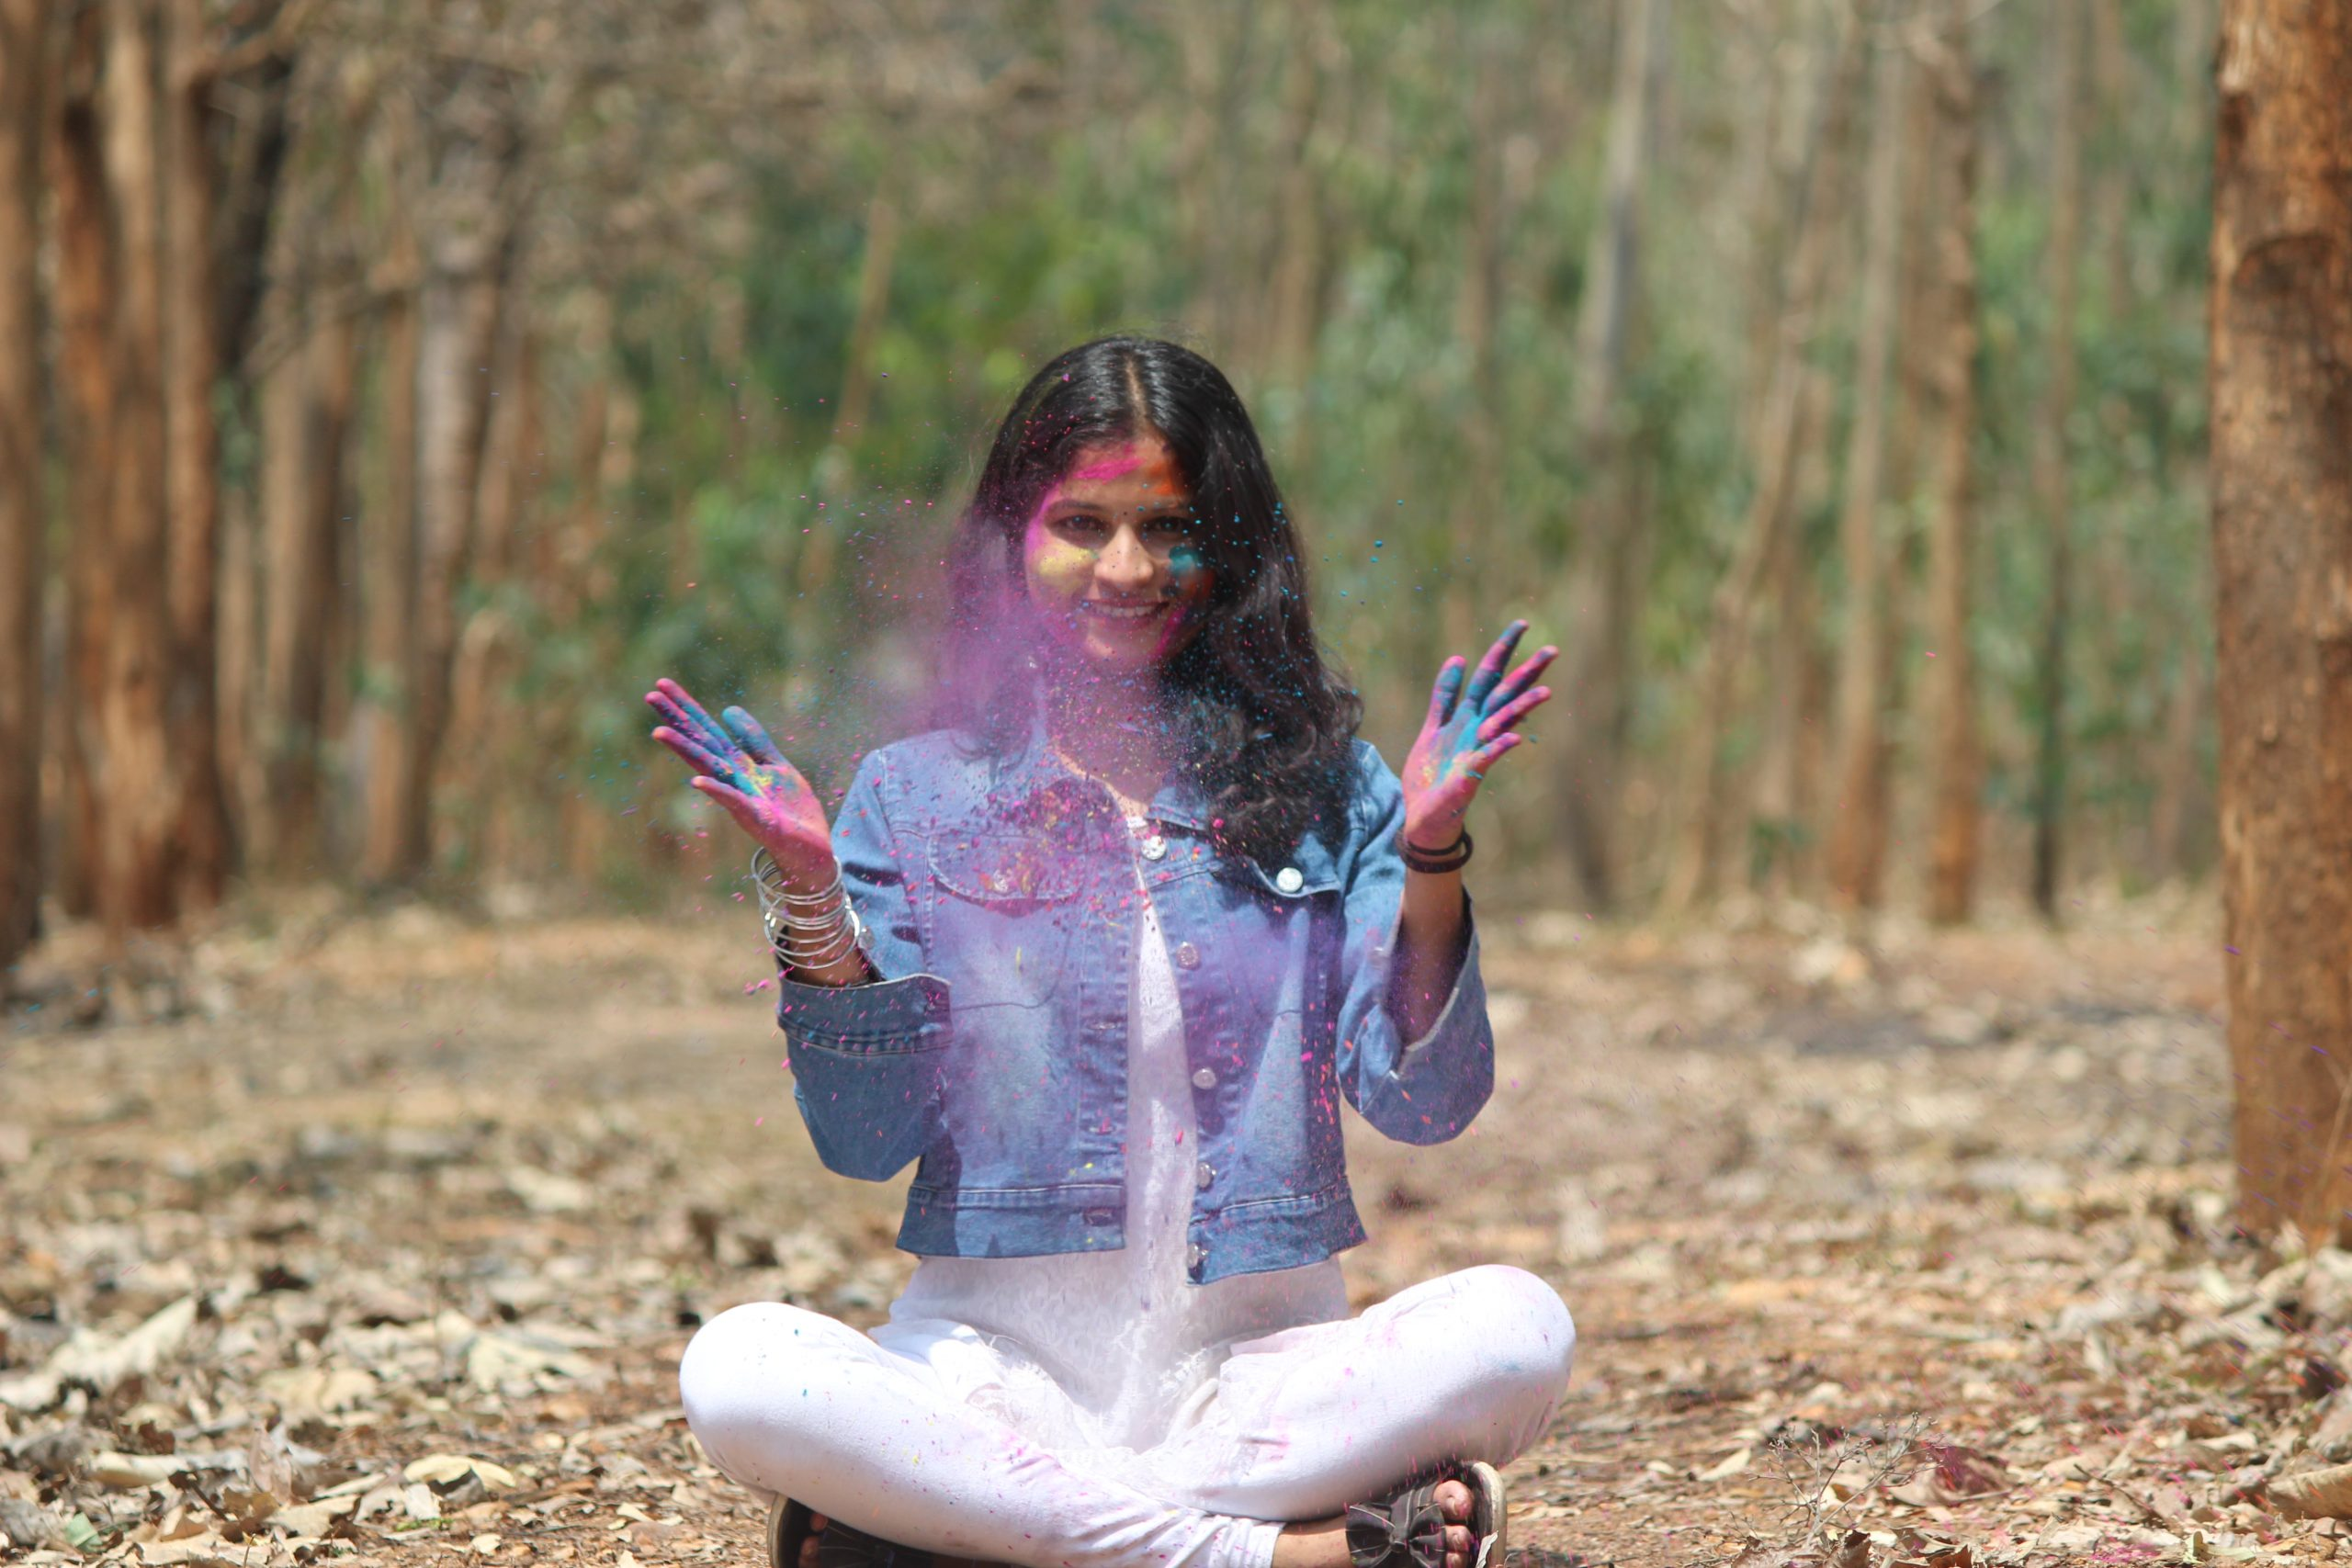 A girl playing with Holi colors